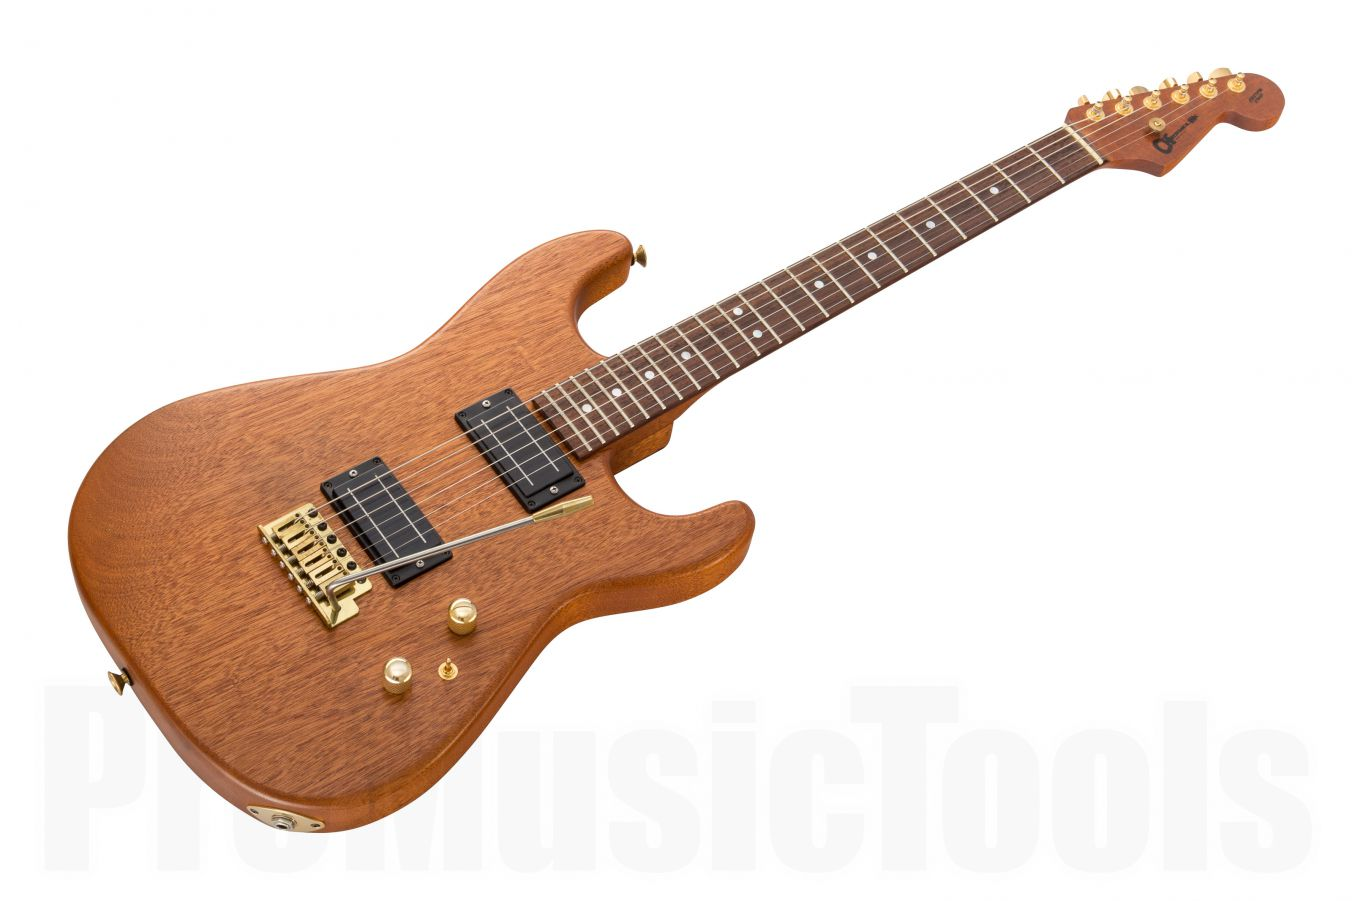 Charvel USA Custom Shop Strat HH Trem - Natural Mahogany (body & neck)